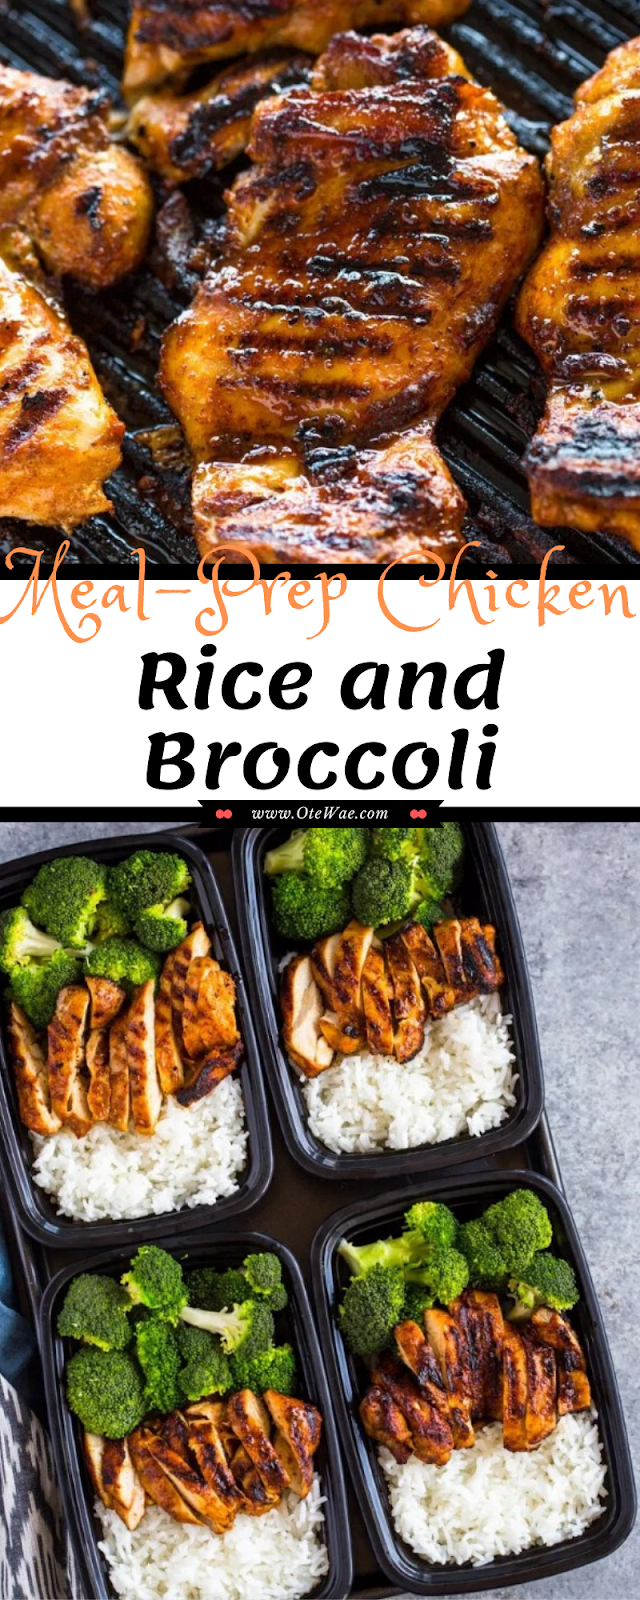 Meal-Prep Chicken Rice and Broccoli